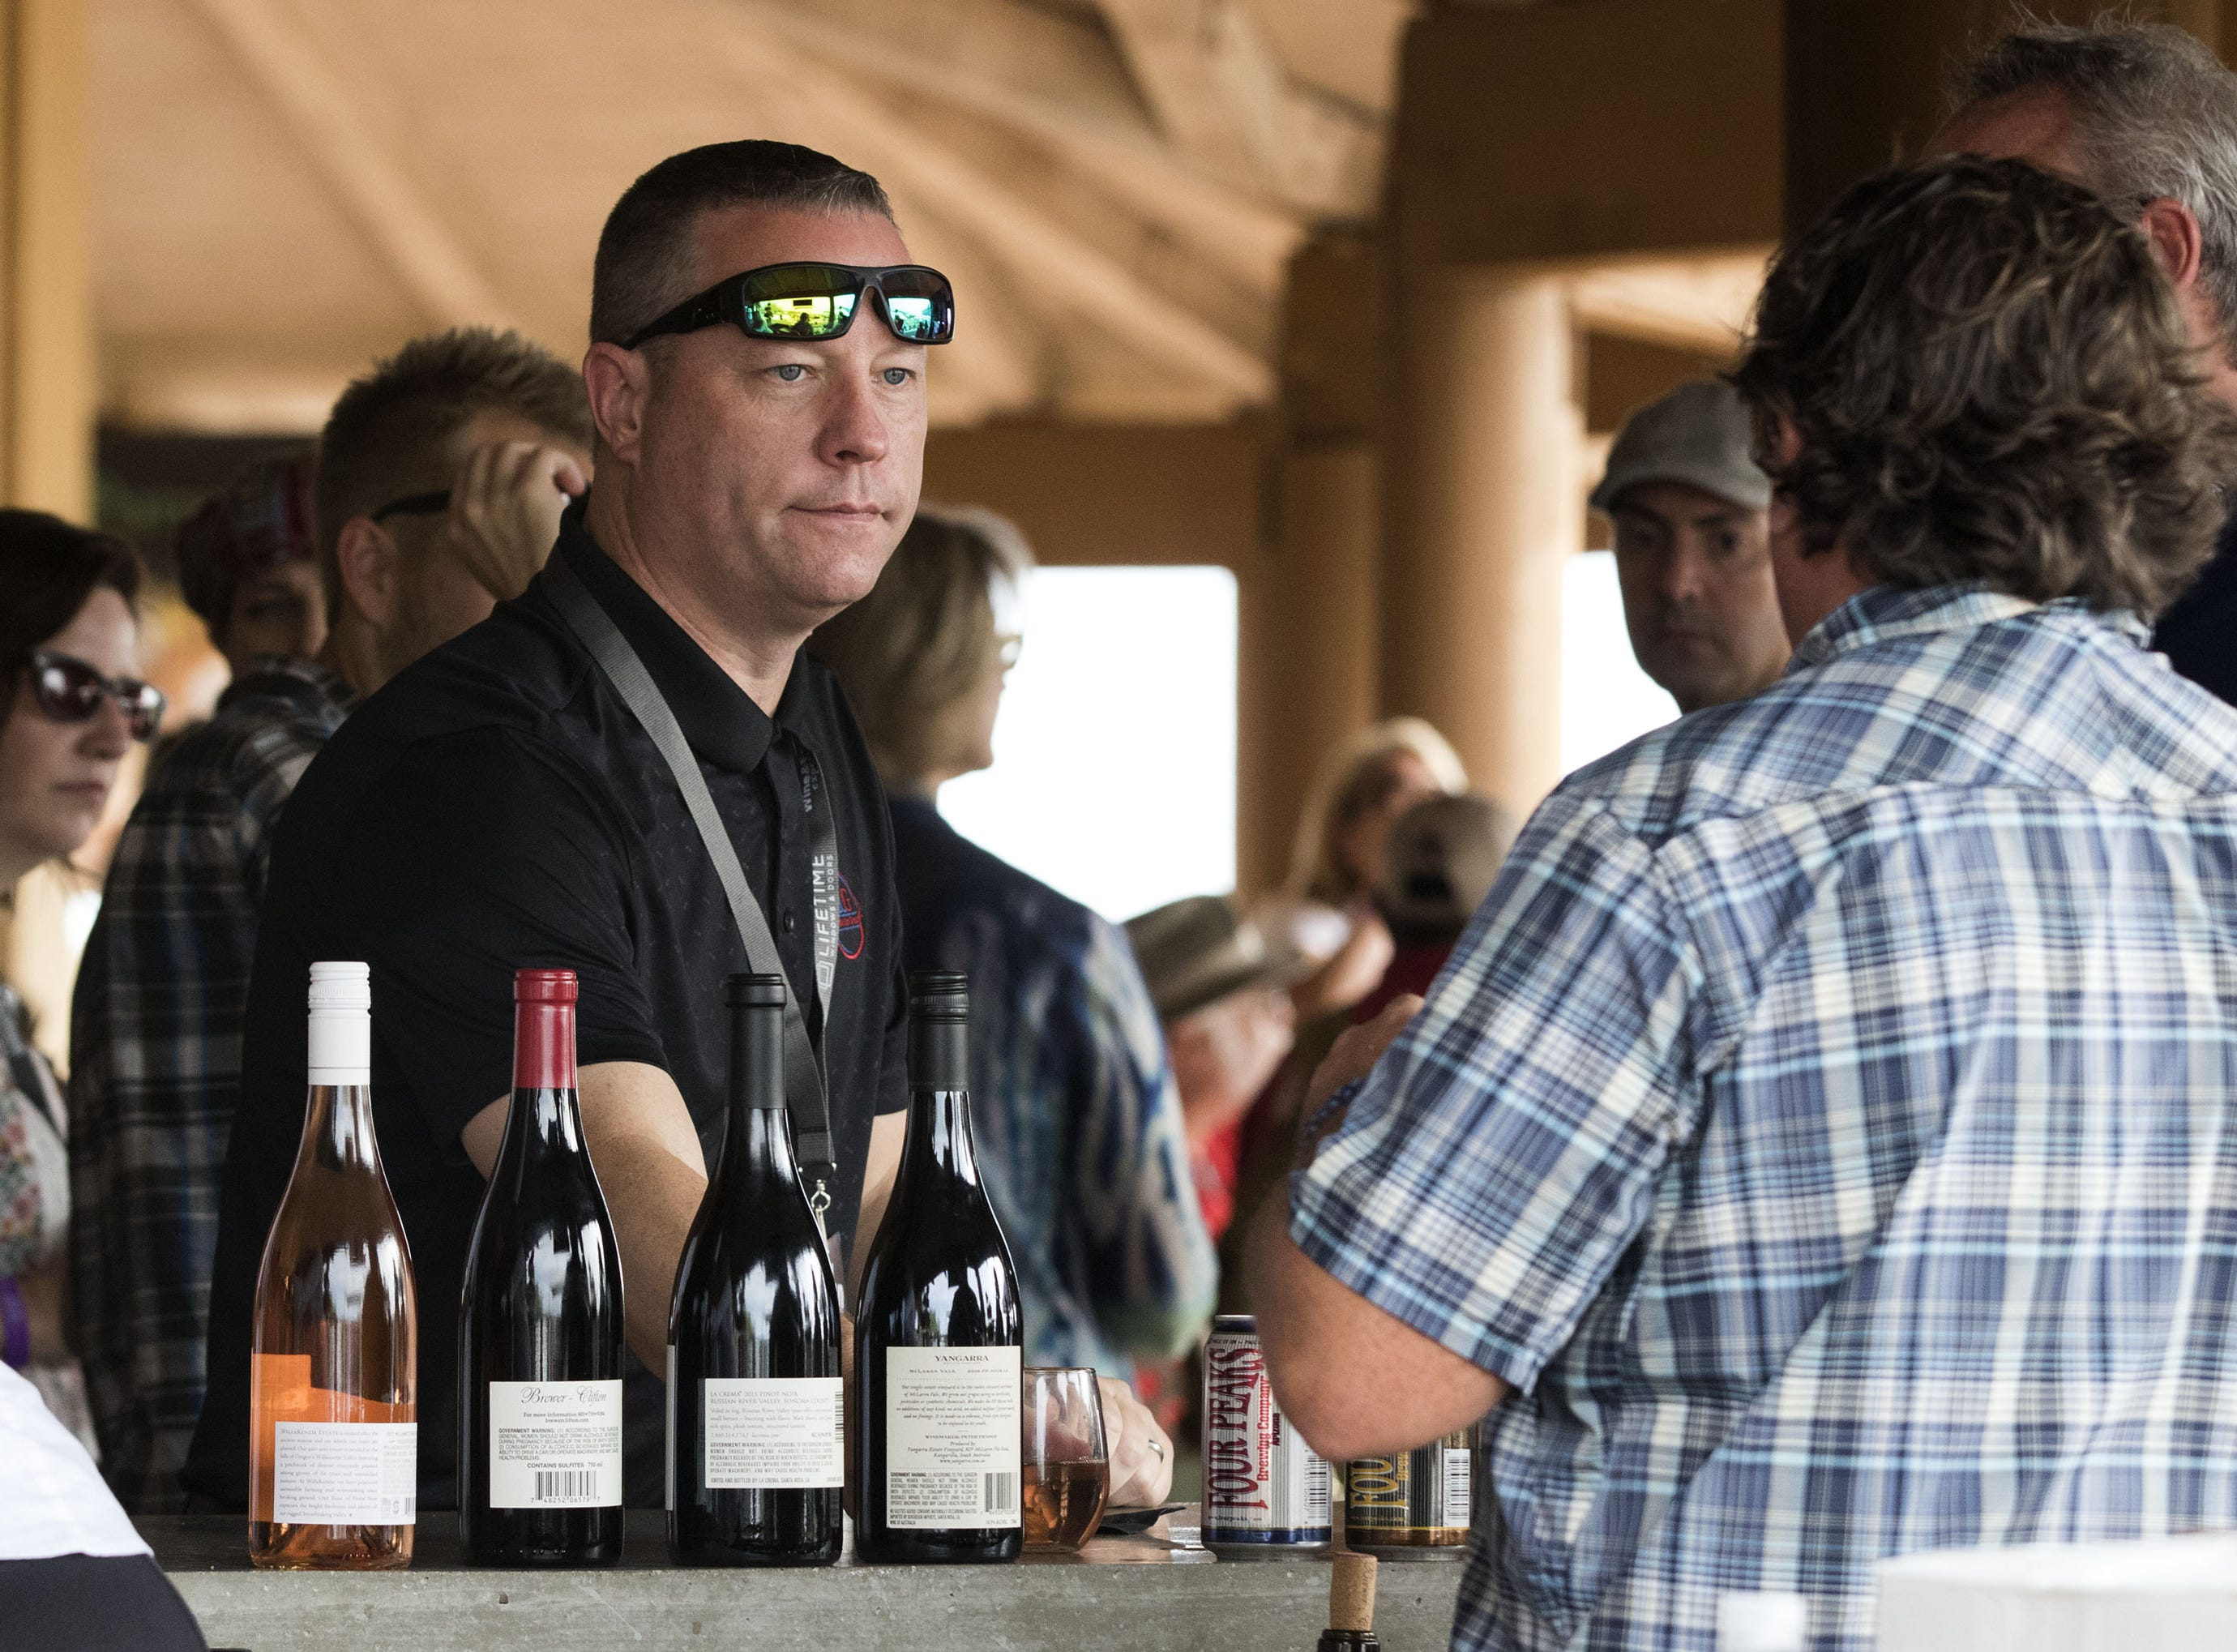 A gentleman listens as he waits for his sample of wine during the azcentral Wine & Food Experience at WestWorld of Scottsdale, Sunday, Nov. 4, 2018.